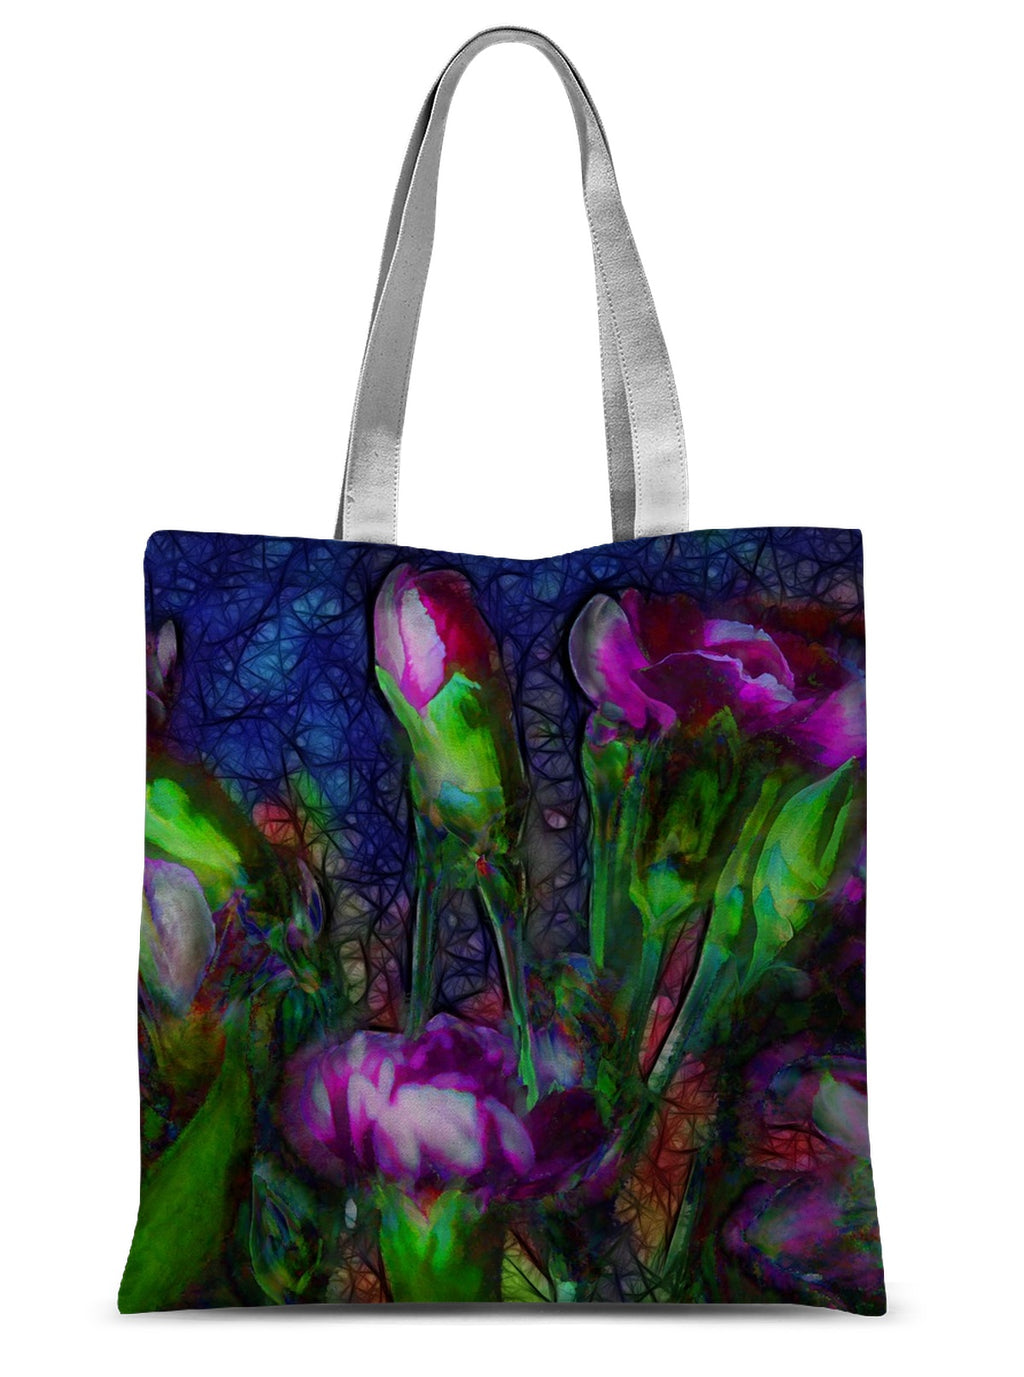 Abstract Pink Carnations Sublimation Tote Bag - expressive-flower-art-goods.myshopify.com